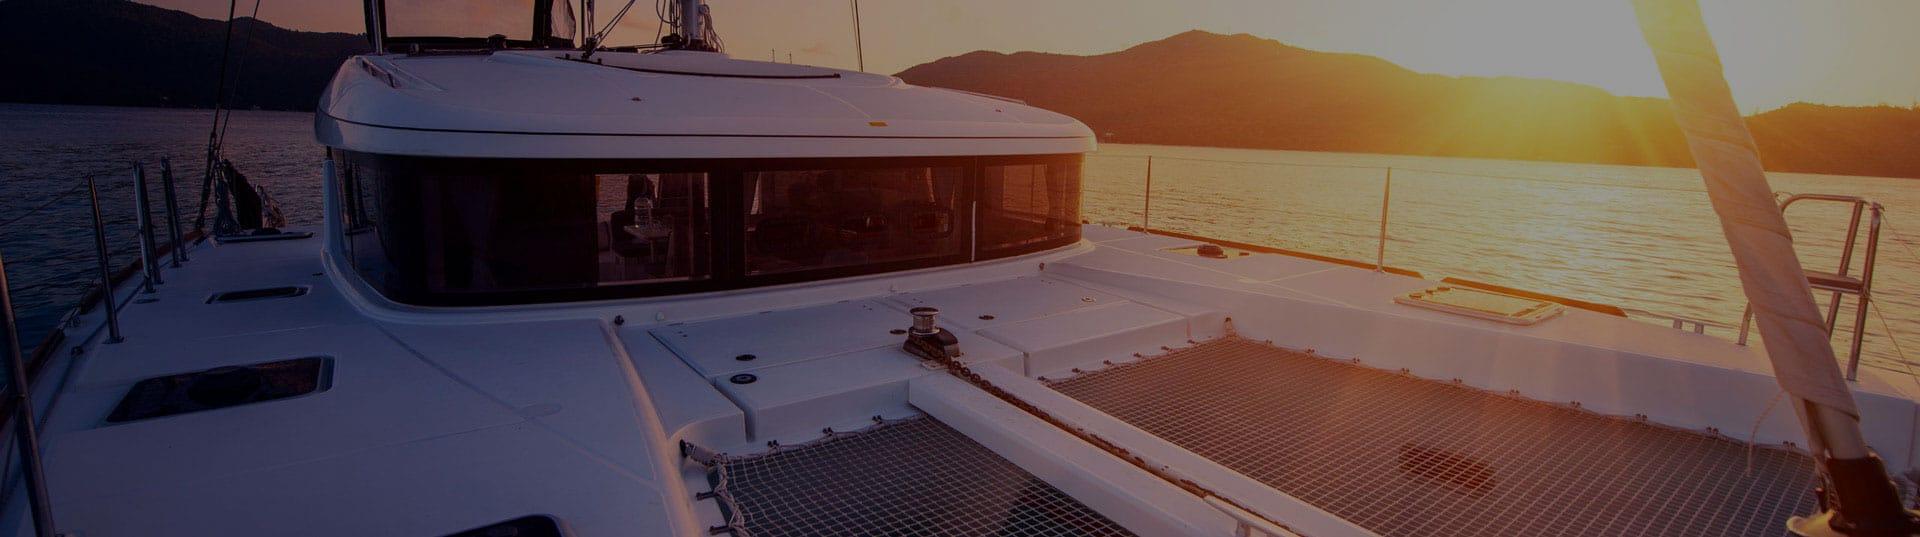 Tailored catamaran multihulls net